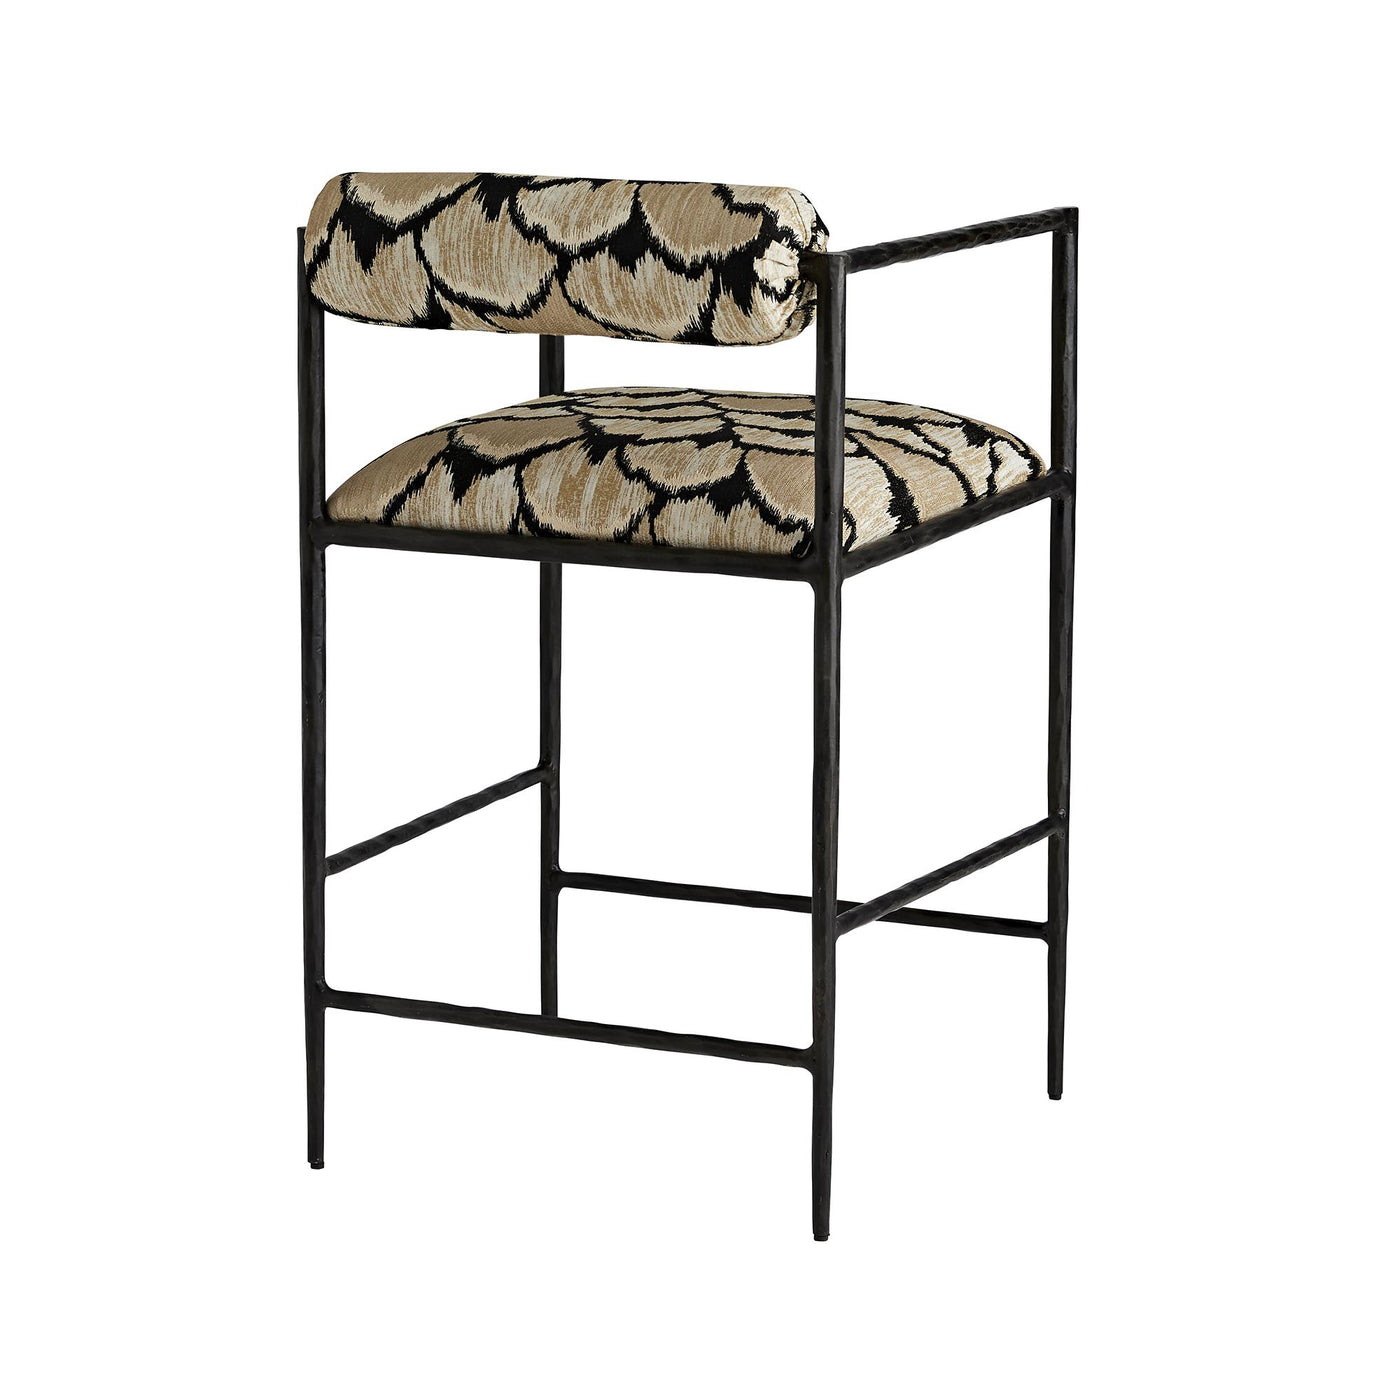 arteriors home barbana counter stool ocelot embroidery back